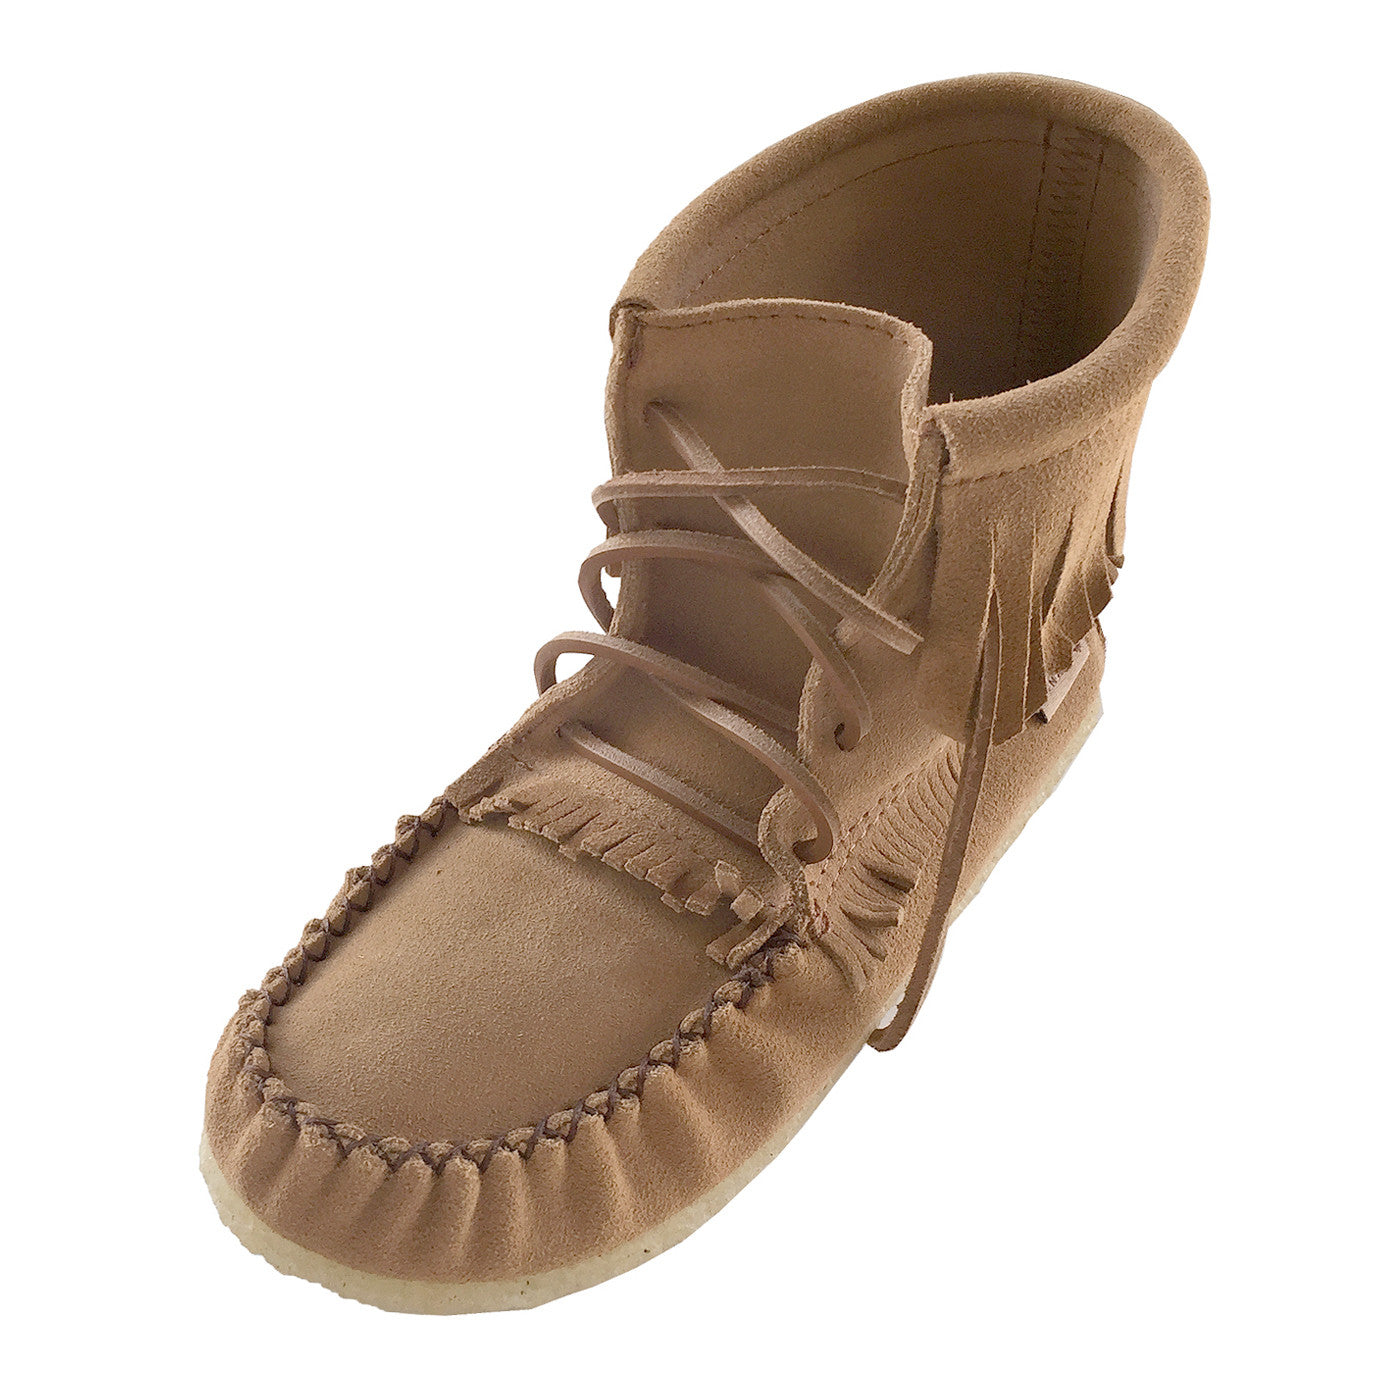 25eeed516aea9 Women's Apache Suede Moccasin Boots 137376